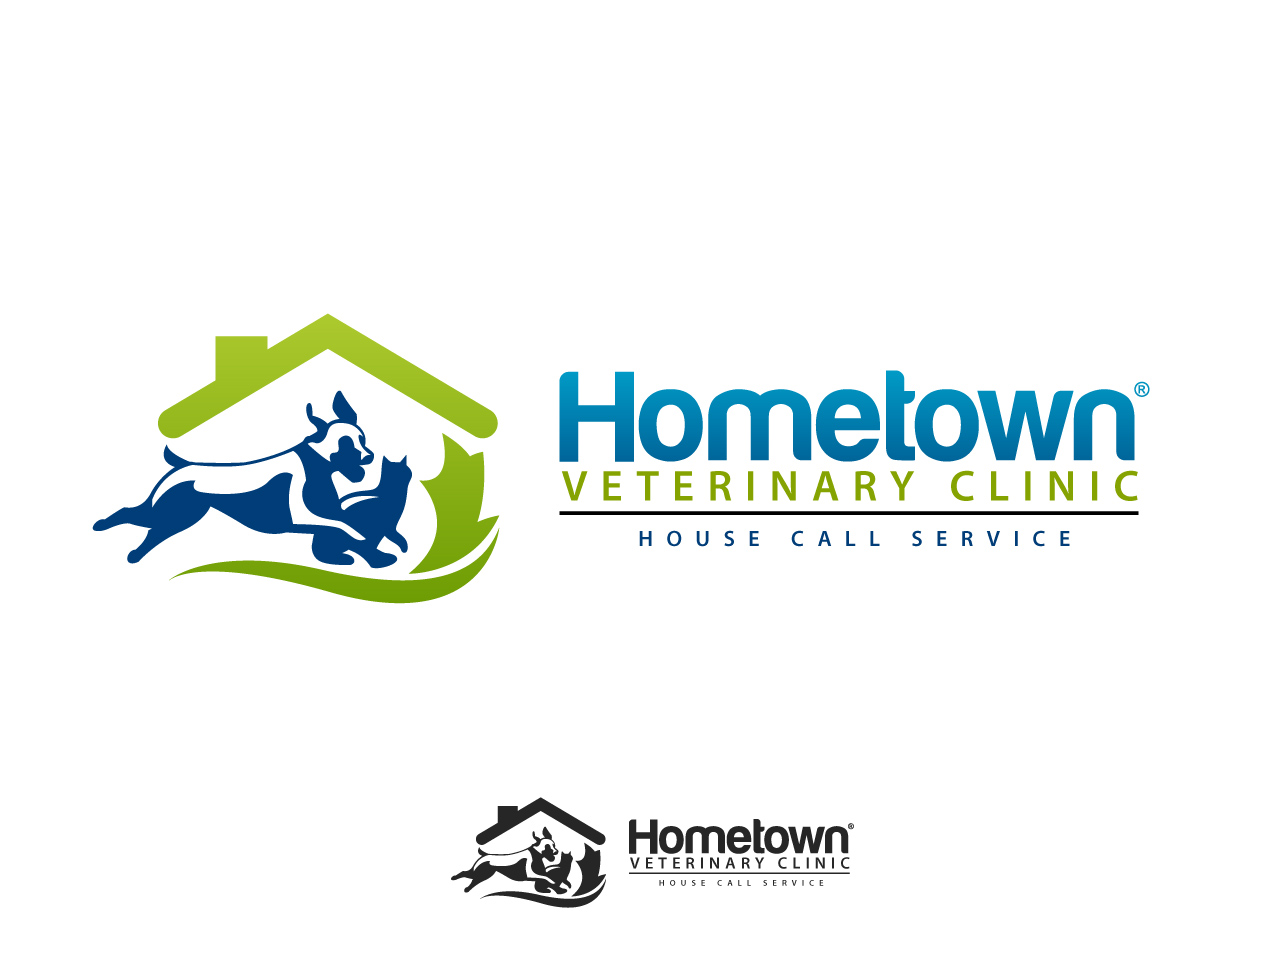 Logo Design by jpbituin - Entry No. 30 in the Logo Design Contest Captivating Logo Design for Hometown Veterinary Clinic.